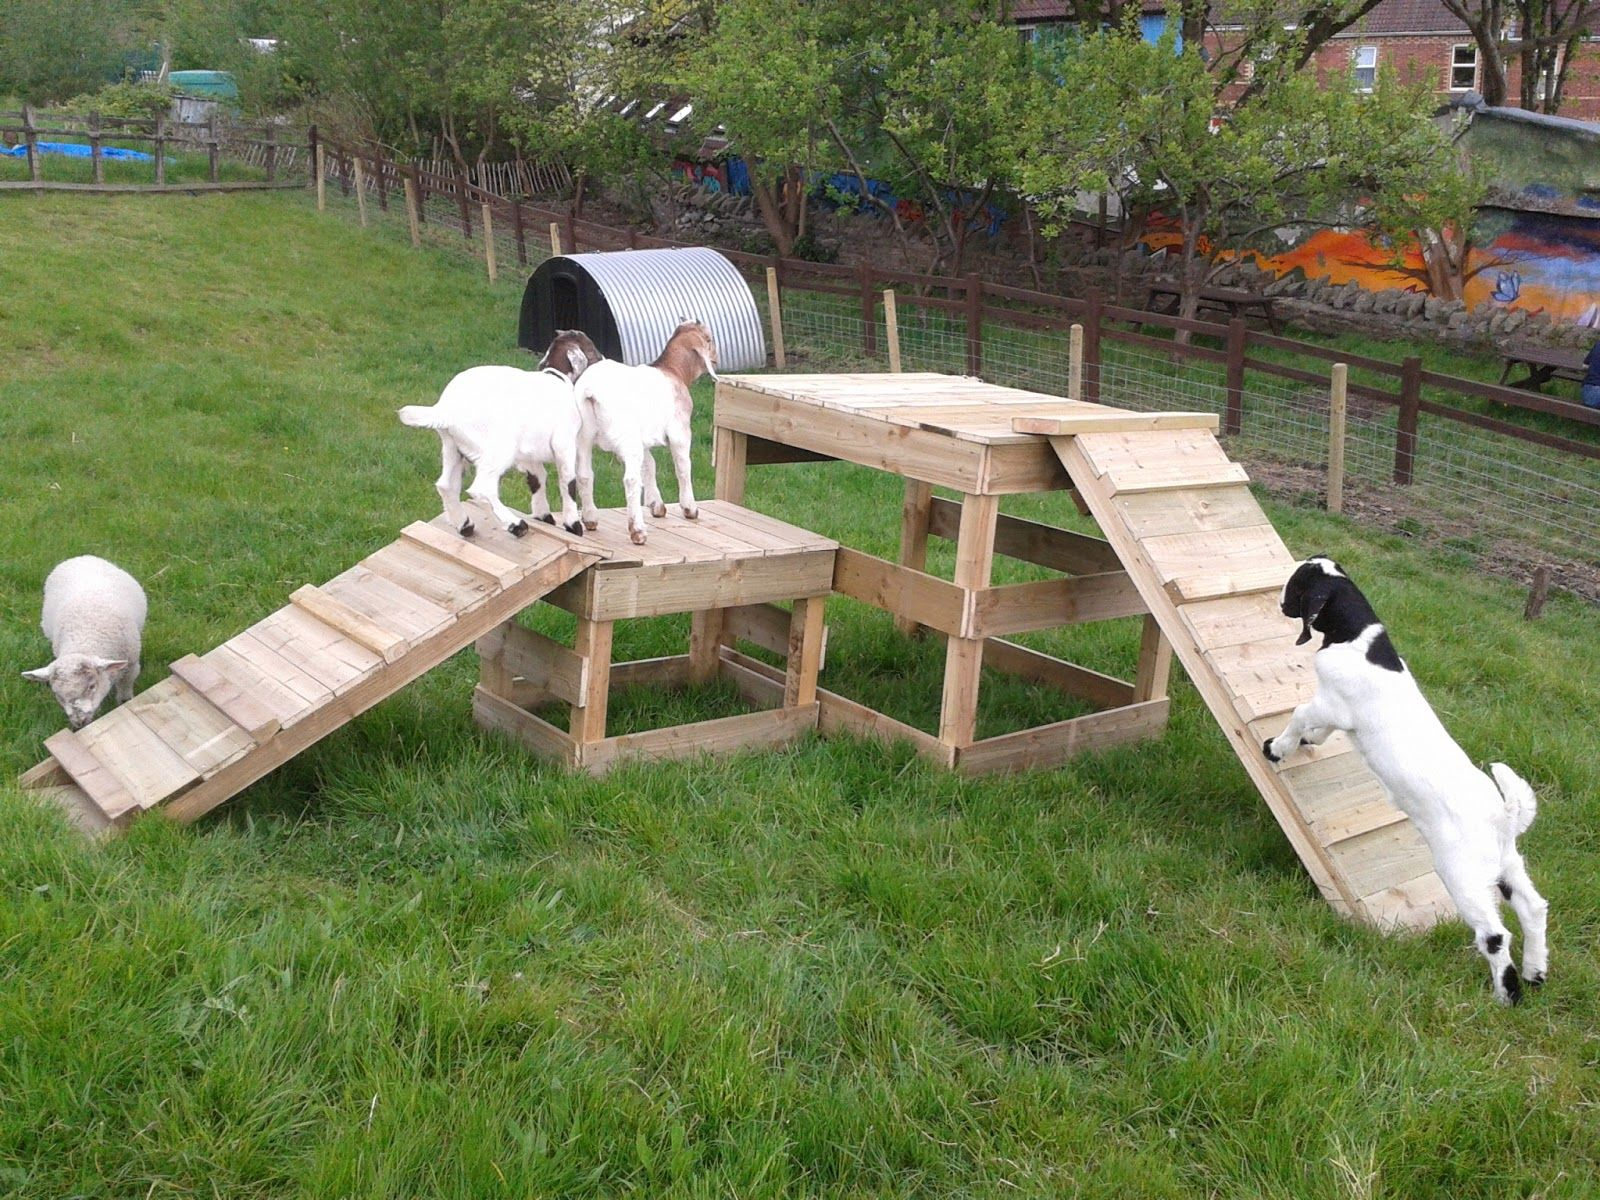 Seesaw 2 Goat Bridges 3 Goat Tower 4 Tires 5 Stairs 6 Stairs And Tunnels 7 Platforms In 2020 Goat Playground Goat House Goat Shelter